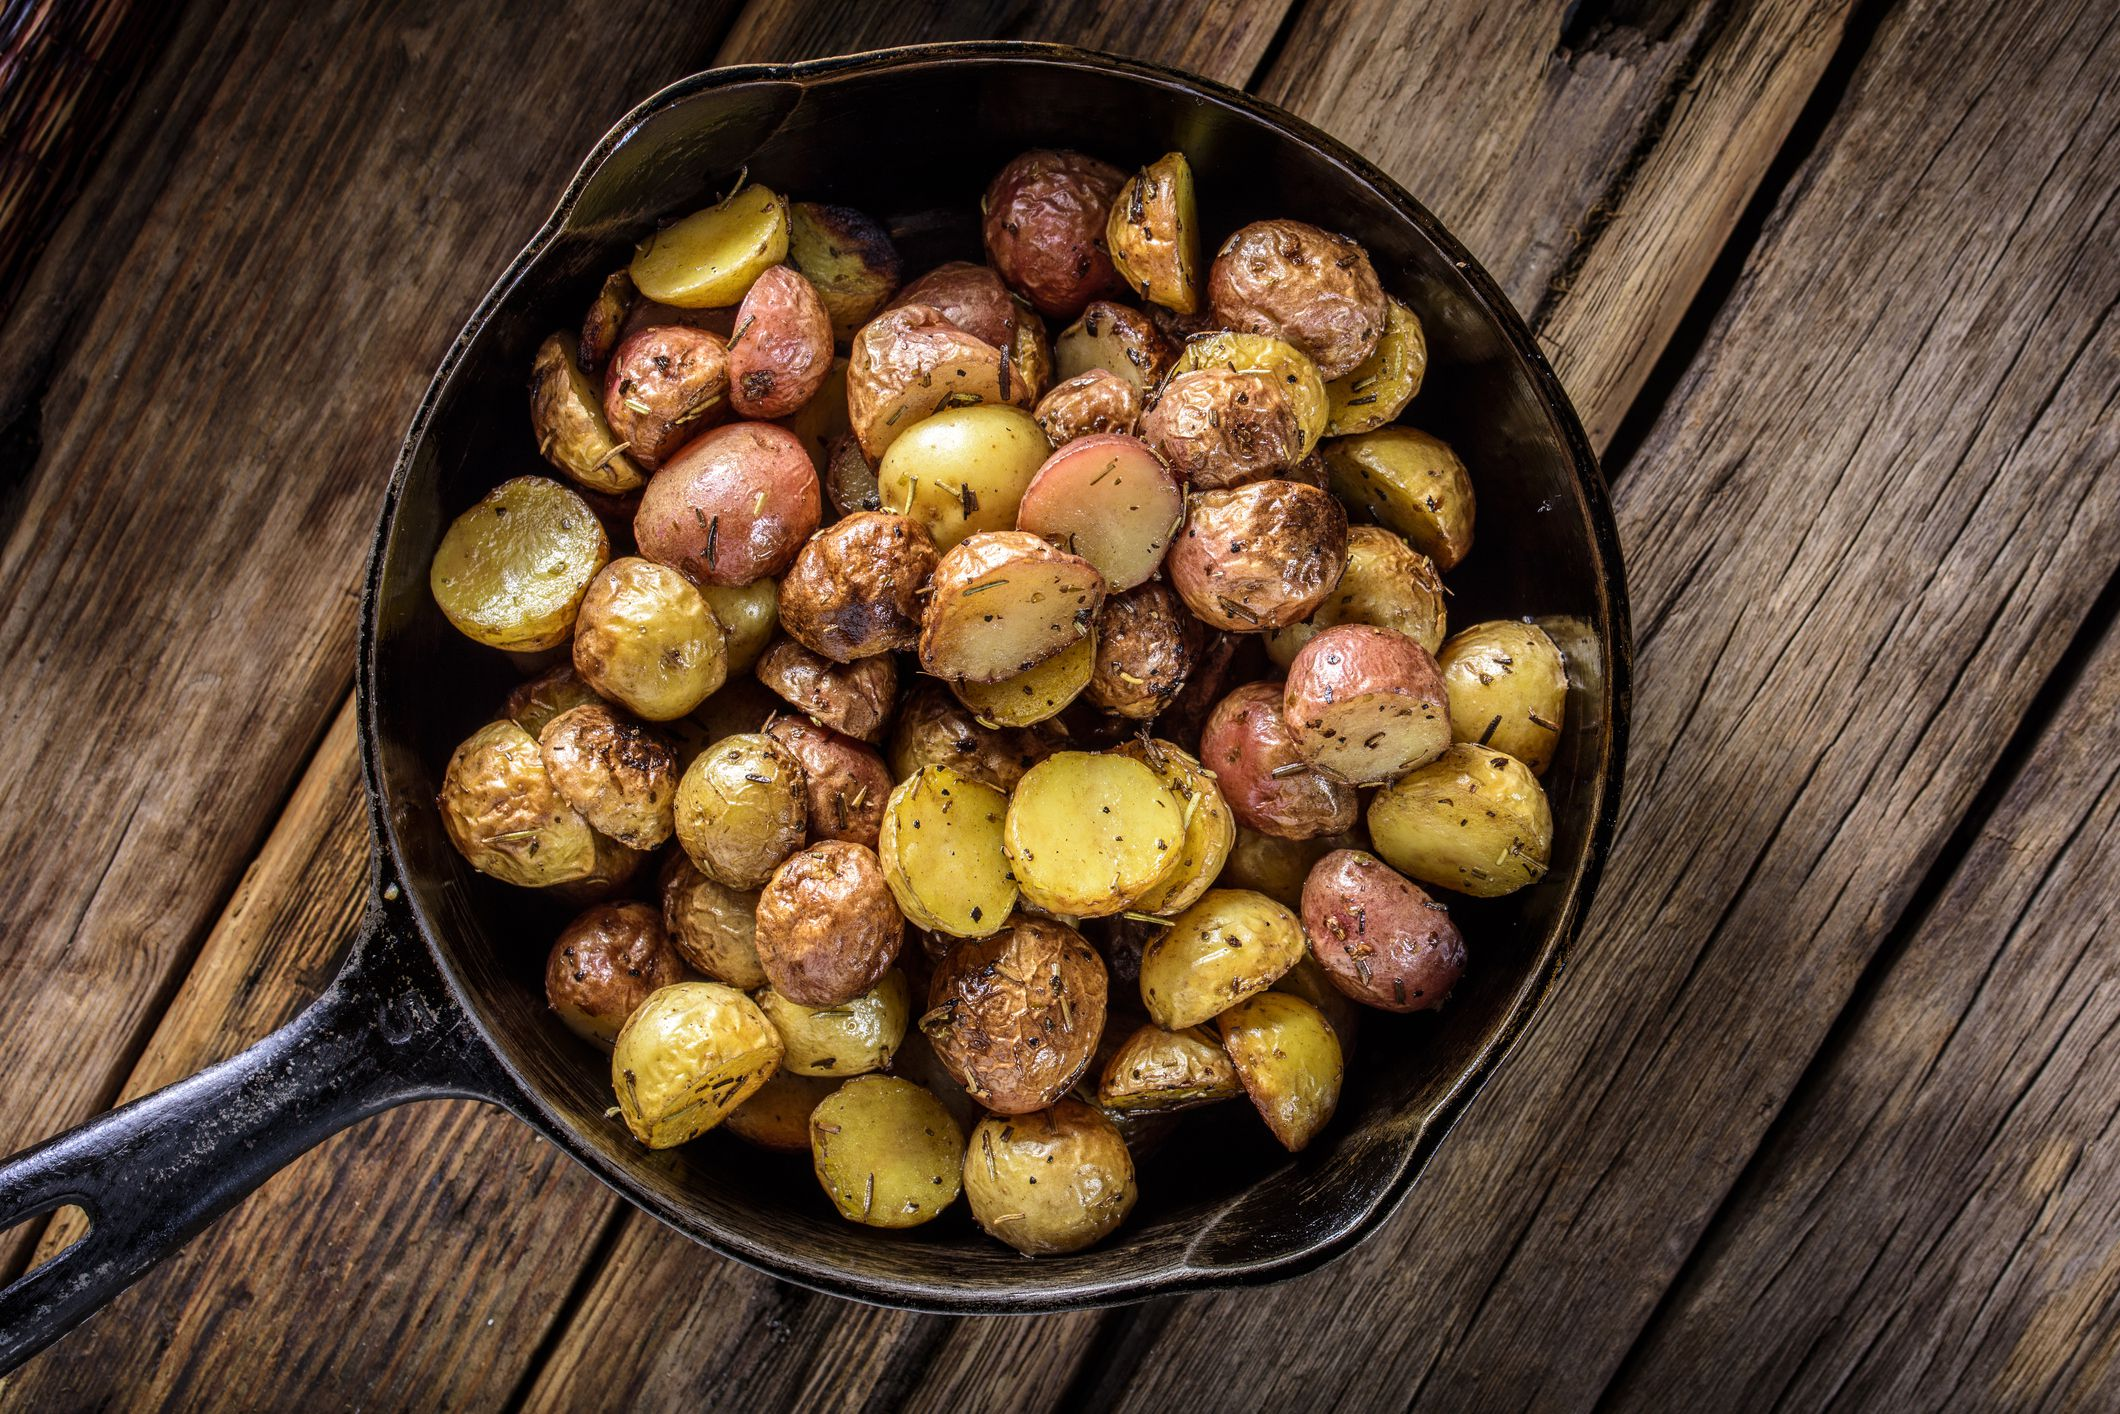 Yukon Gold Potato Recipes and Cooking Tips